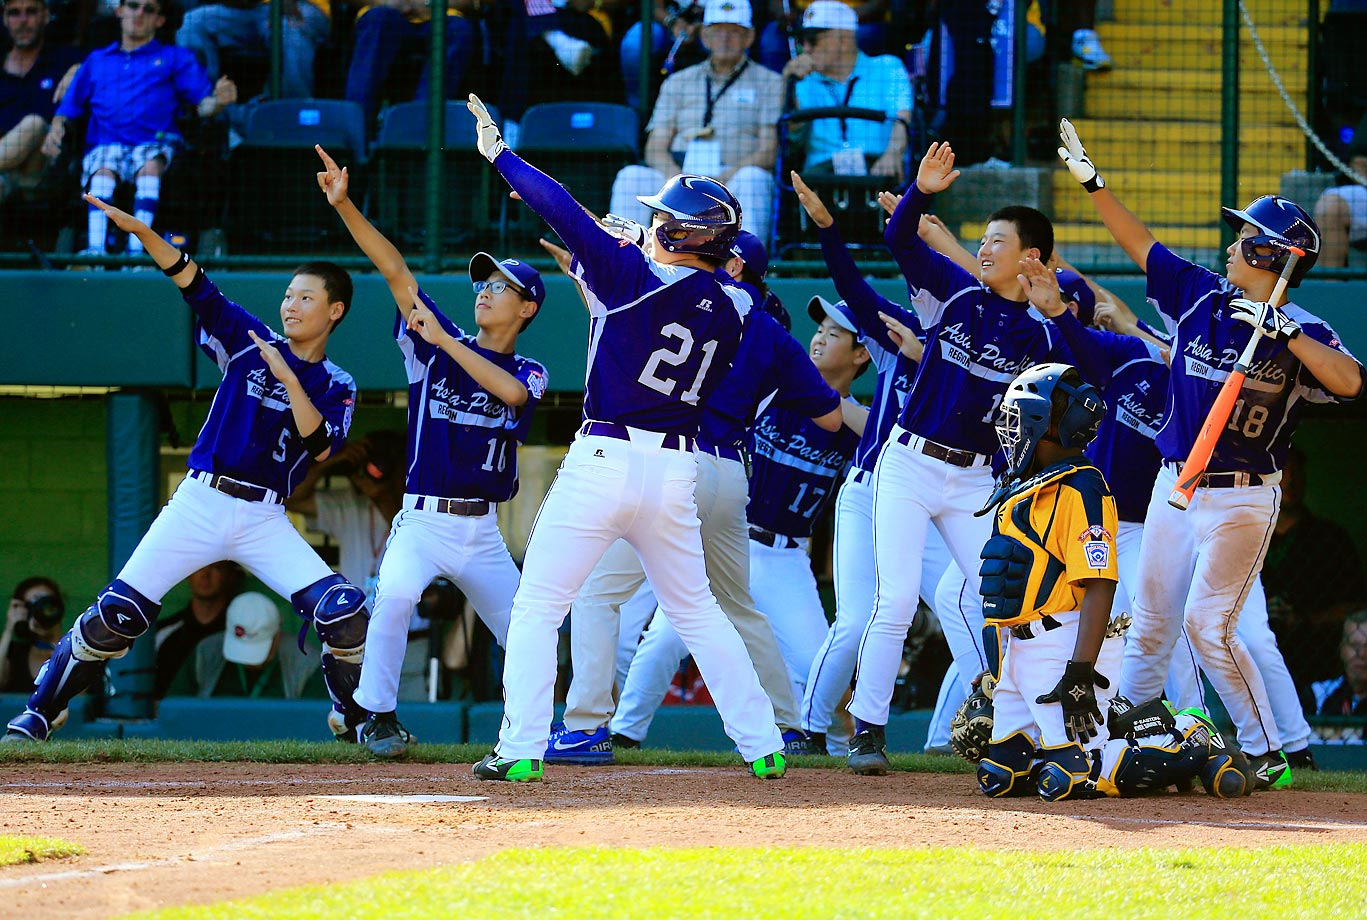 Seoul's Hae Chan Cho (21) celebrates with teammates after hitting a solo home run against Jackie Robinson West (Chicago) in the Little League World Series finale.